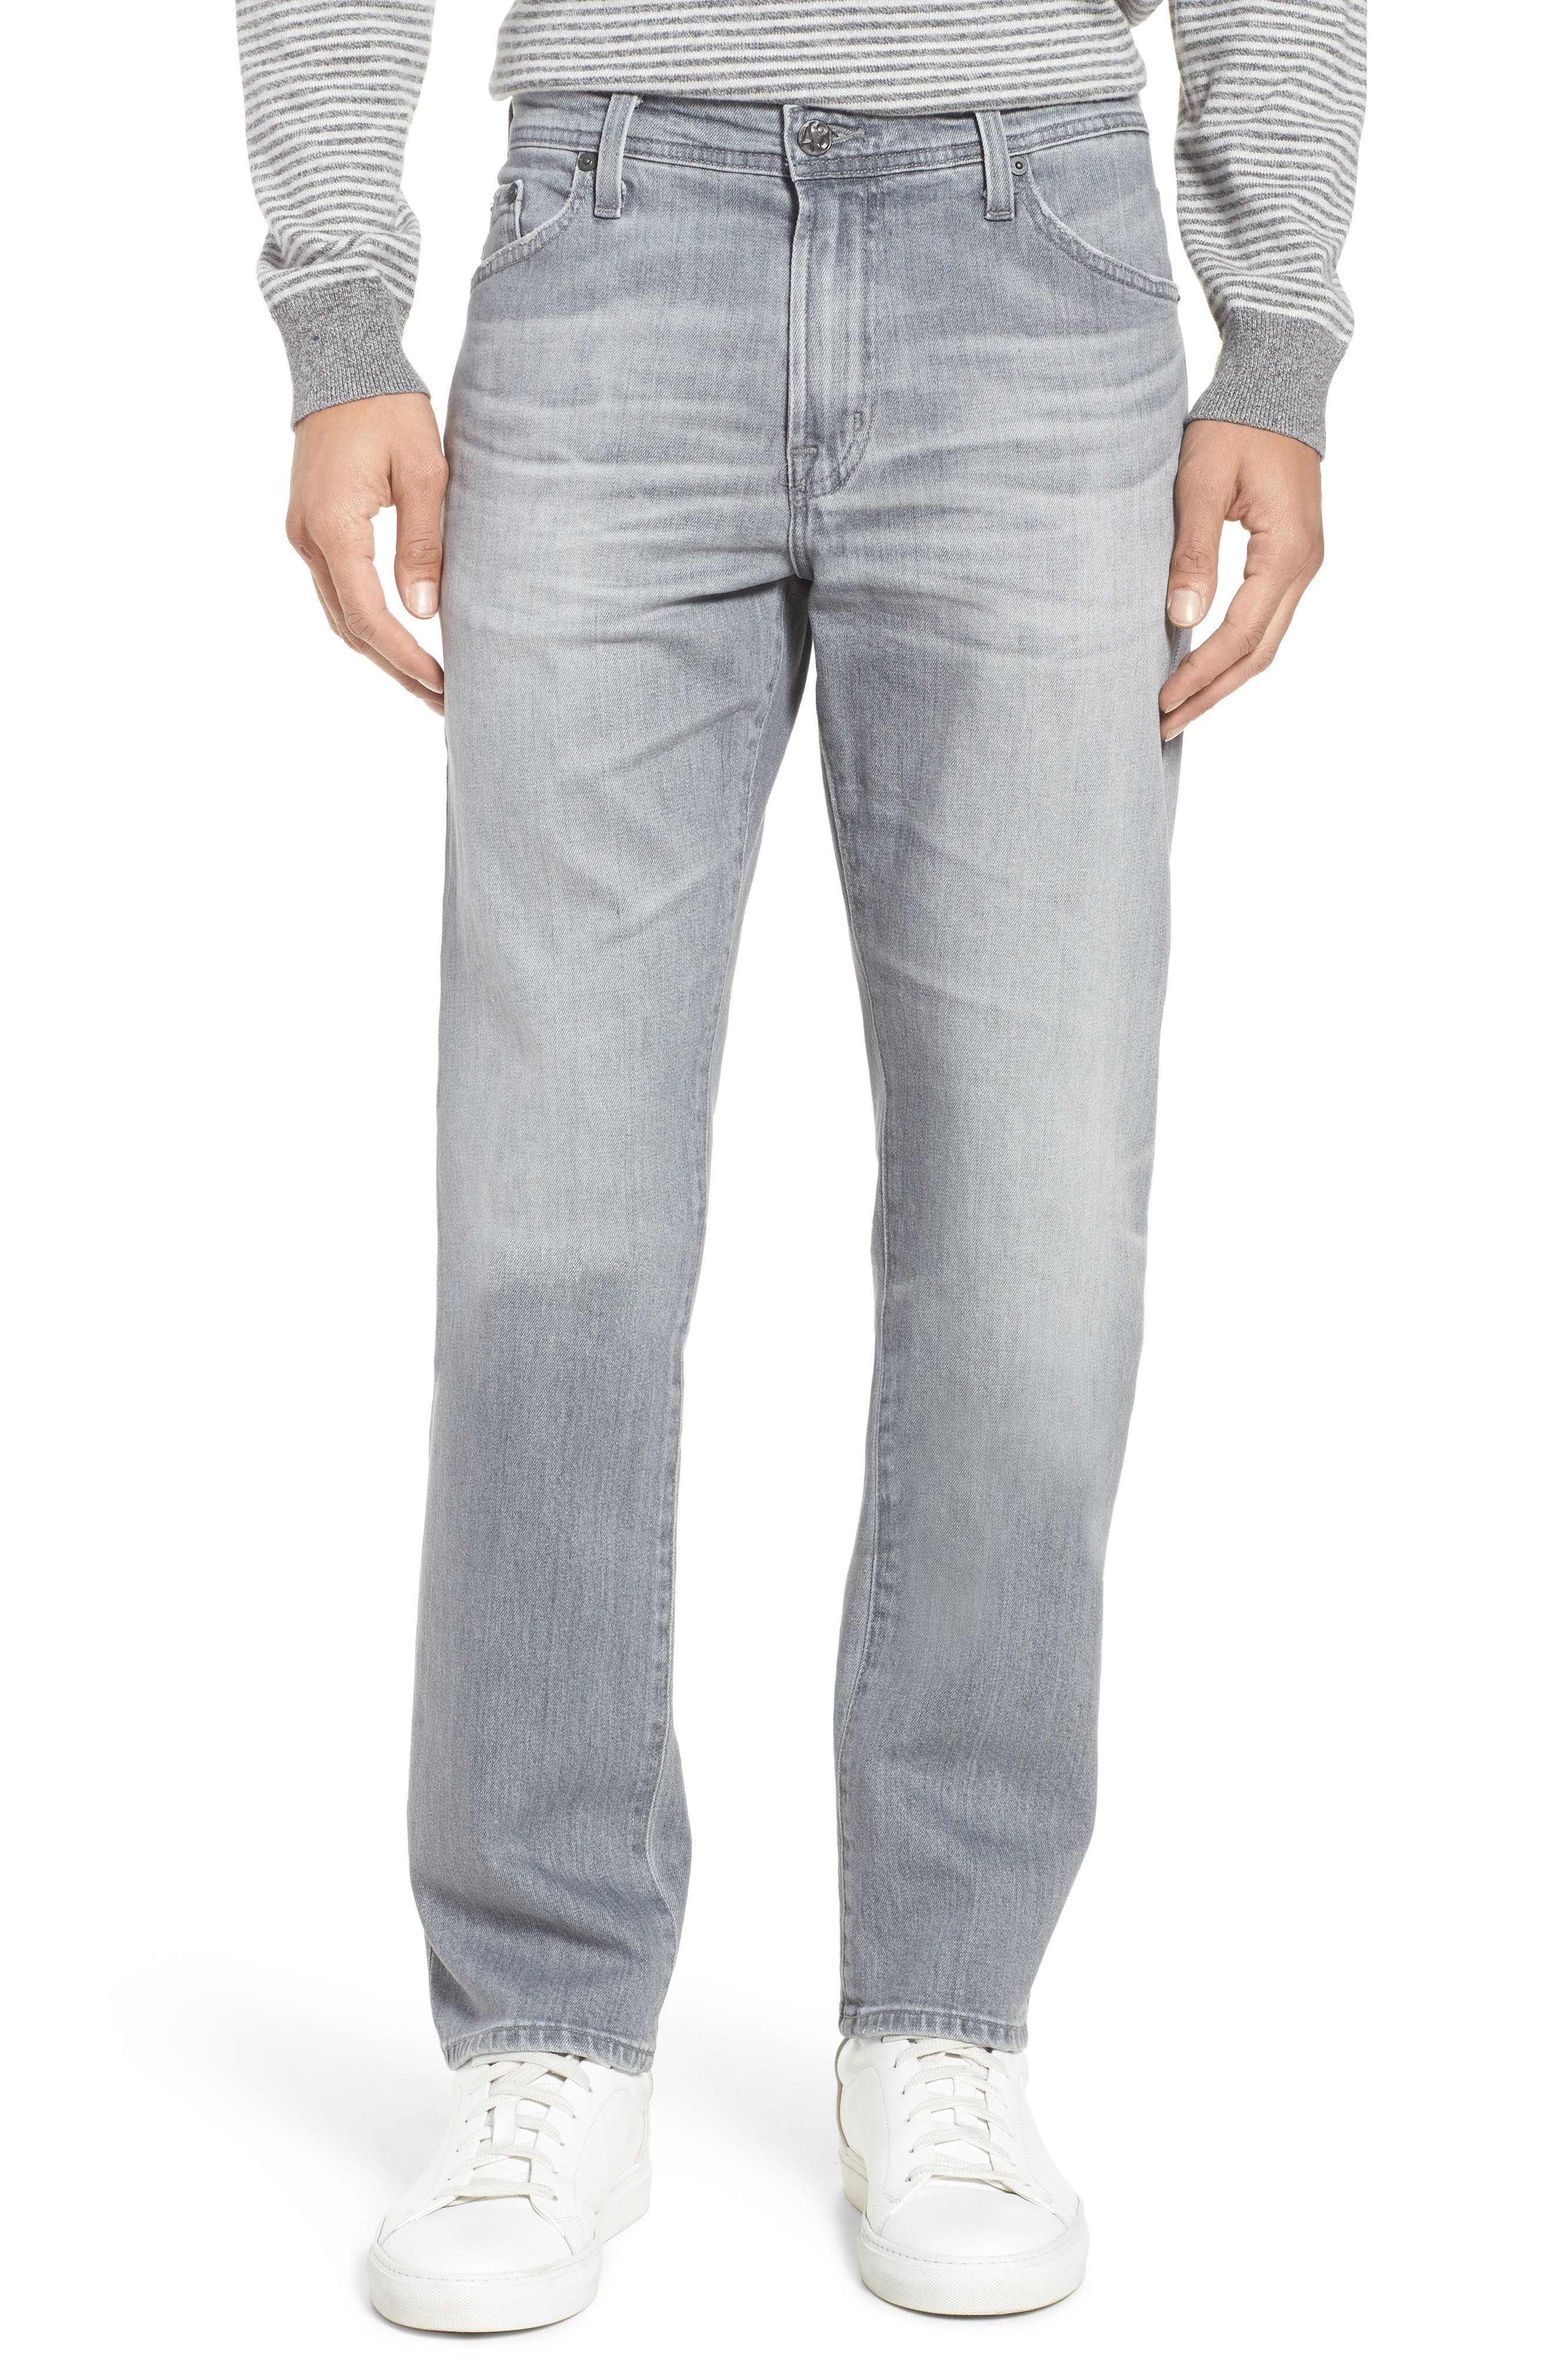 Everett Slim Straight Fit Jeans,                             Main thumbnail 1, color,                             14 Years Colony